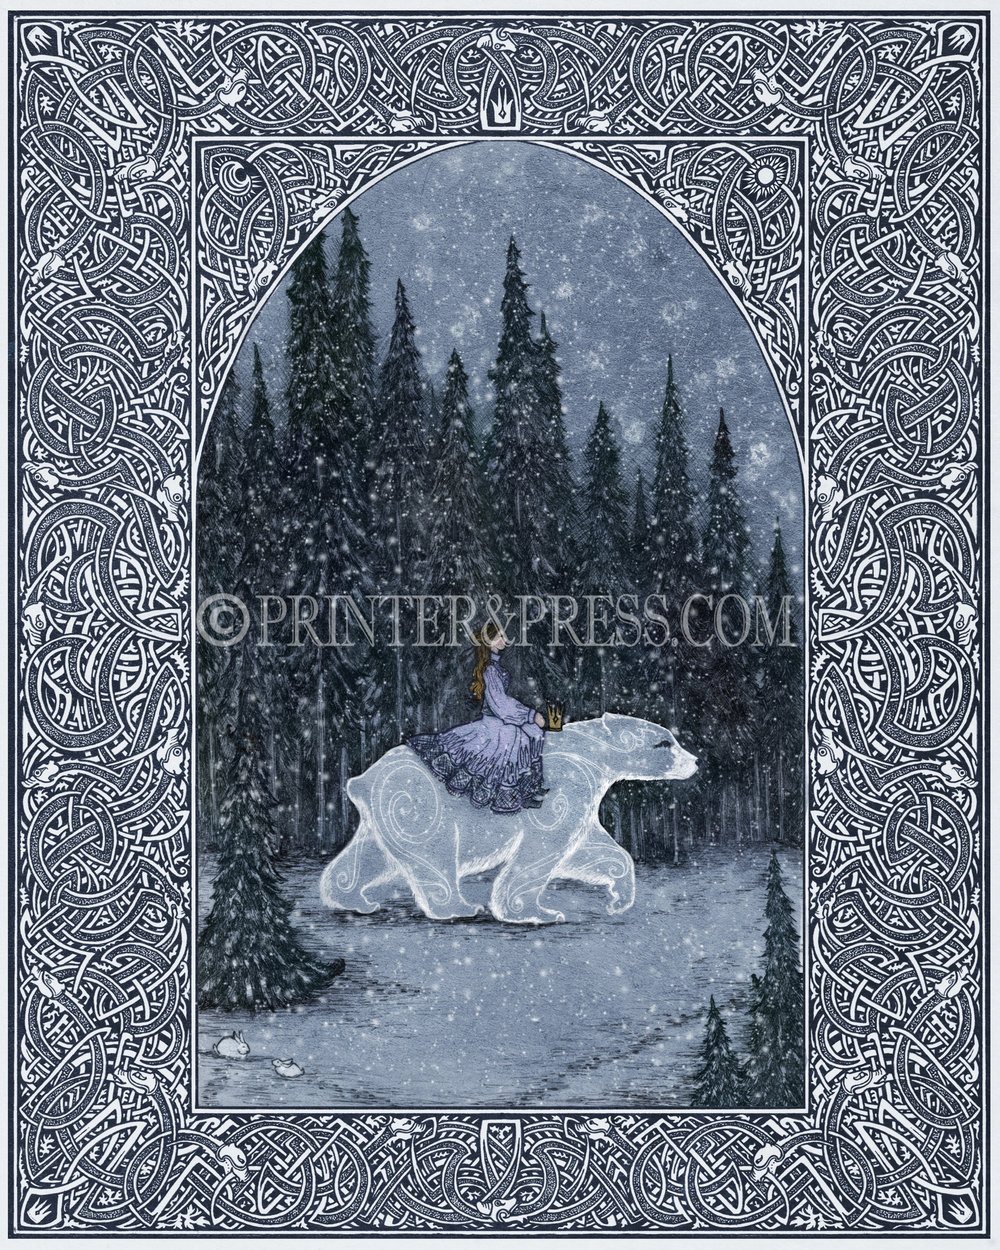 This print was drawn from the story of the Princess and the White Bear King, with the Princess riding a great white polar bear through a dark forest to a castle. The center illustration was done as an intaglio etching, and the border was drawn in pen and ink.